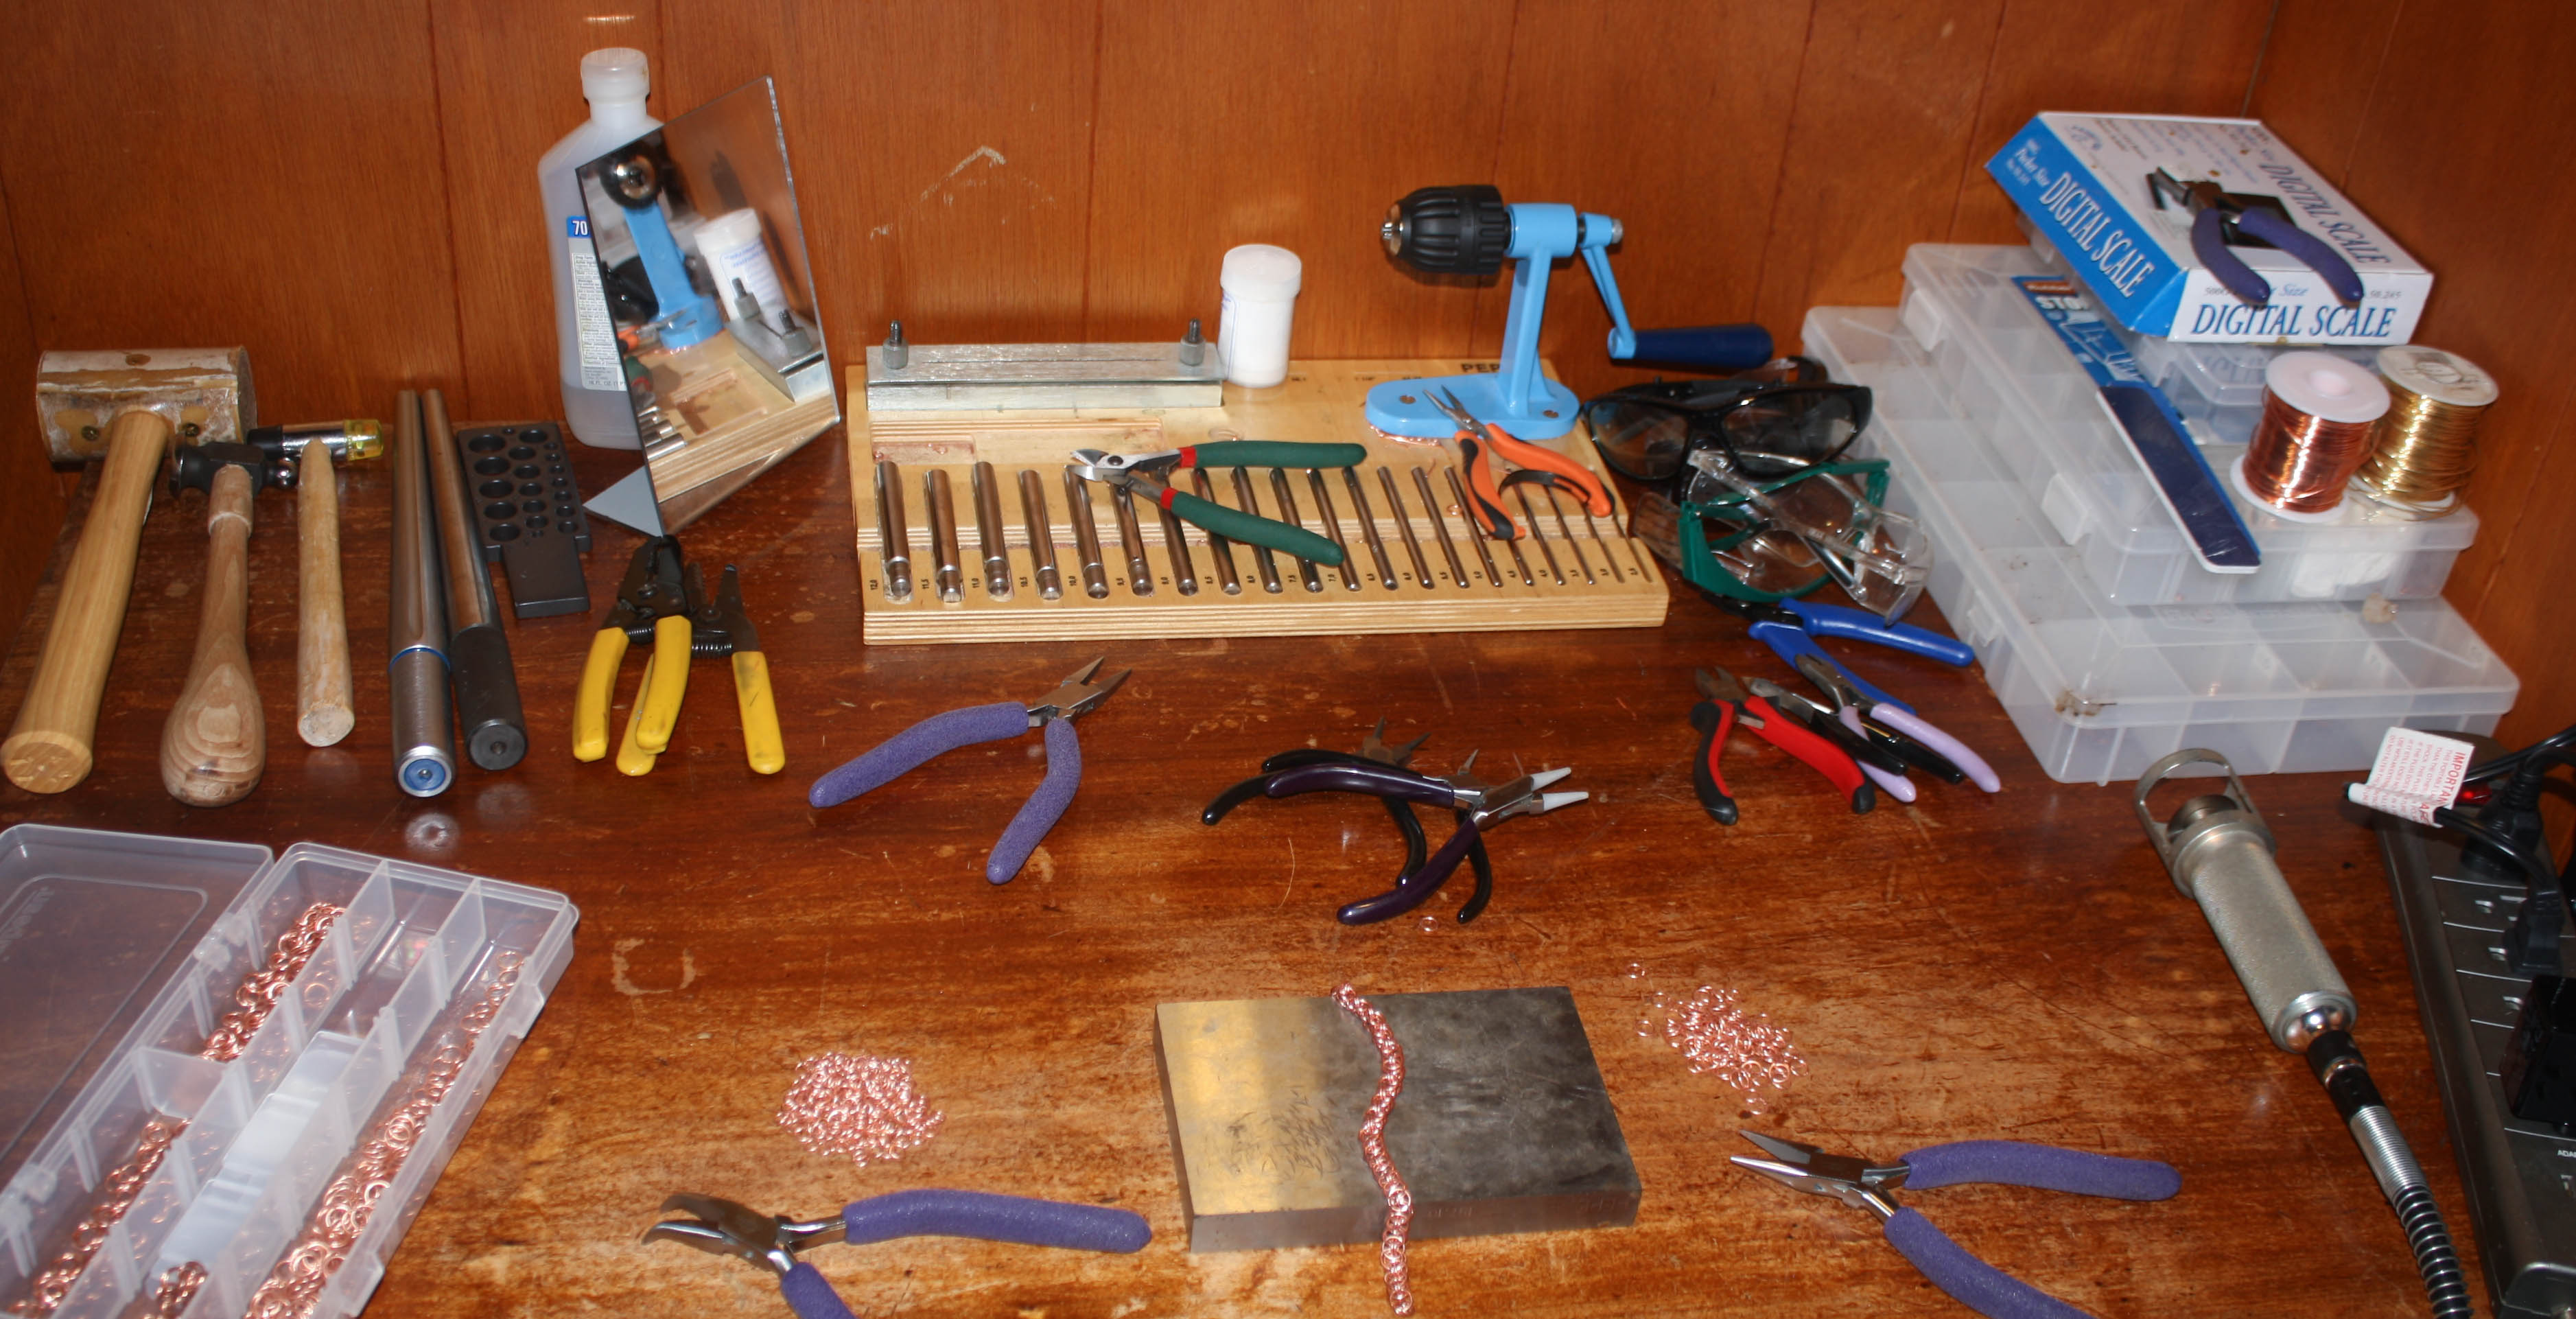 Desk with jewelry tools